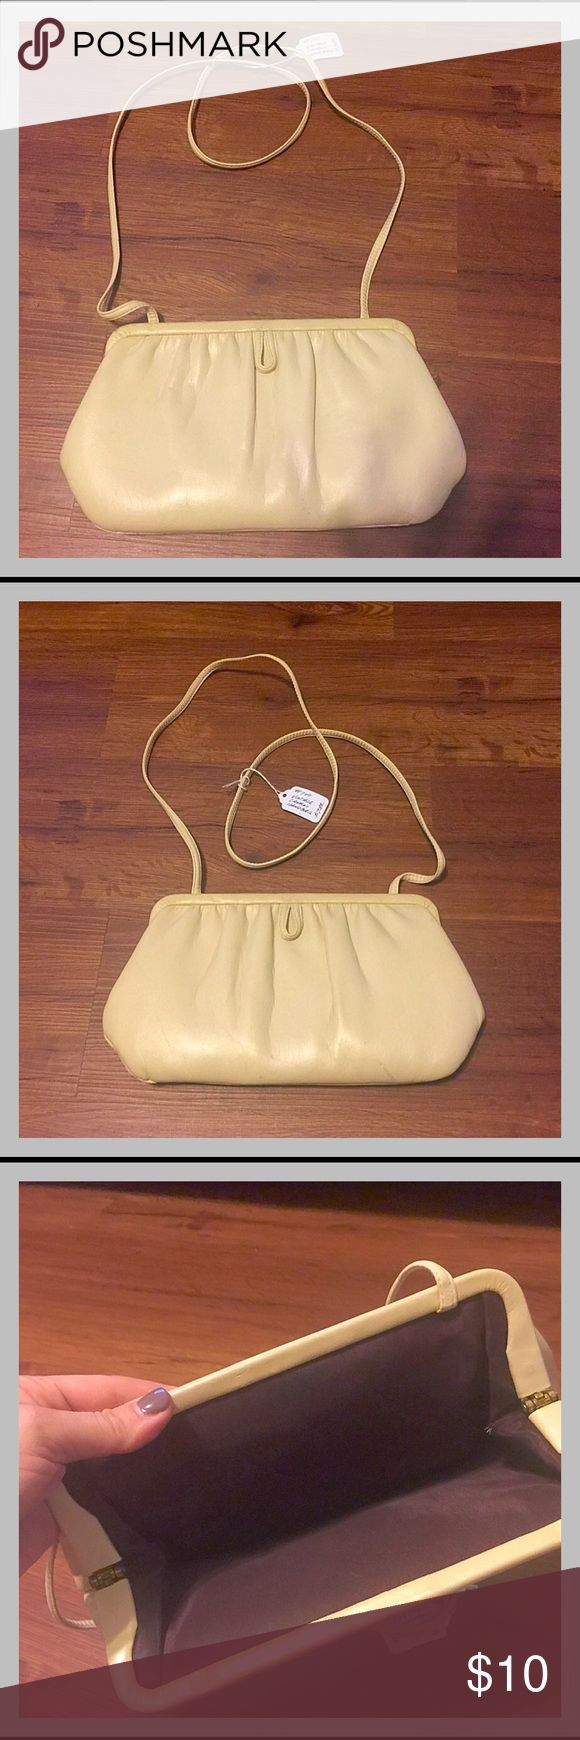 """🔸VINTAGE🔸 Cream Shoulder Bag Small vintage shoulder bag.  Very minimal signs of wear.  Excellent vintage condition!  Measures 11"""" across (at widest point) and is 6"""" tall.  Strap is 20"""" long.  🌟 TOP RATED SELLER 🌟 FAST SHIPPER 🌟 Vintage Bags Shoulder Bags"""